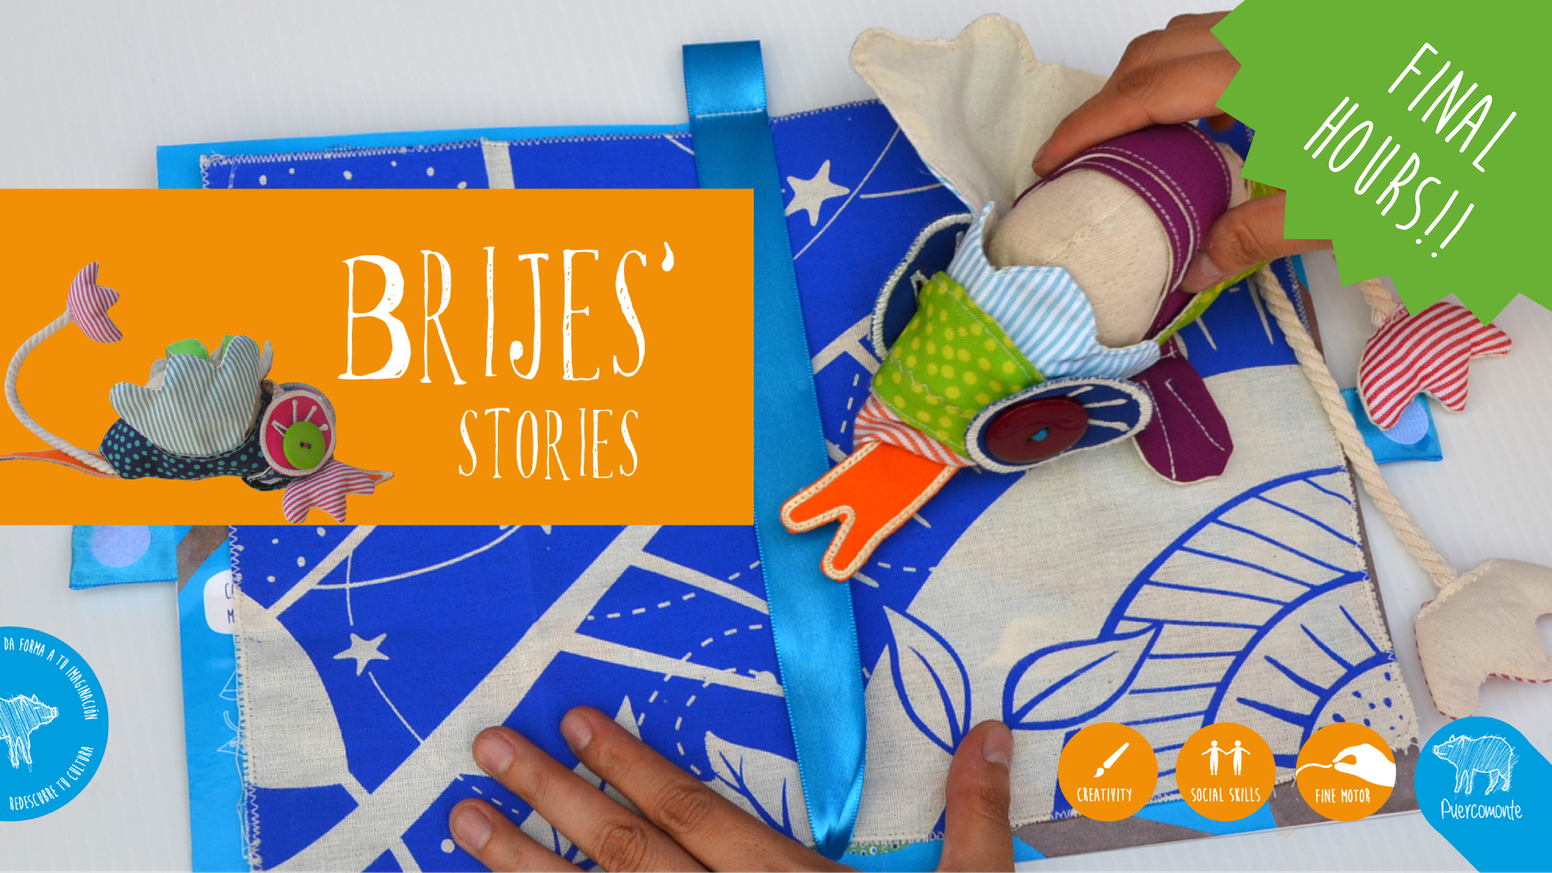 Far more than a toy, a tool for creative thinking and cultural understanding for all ages